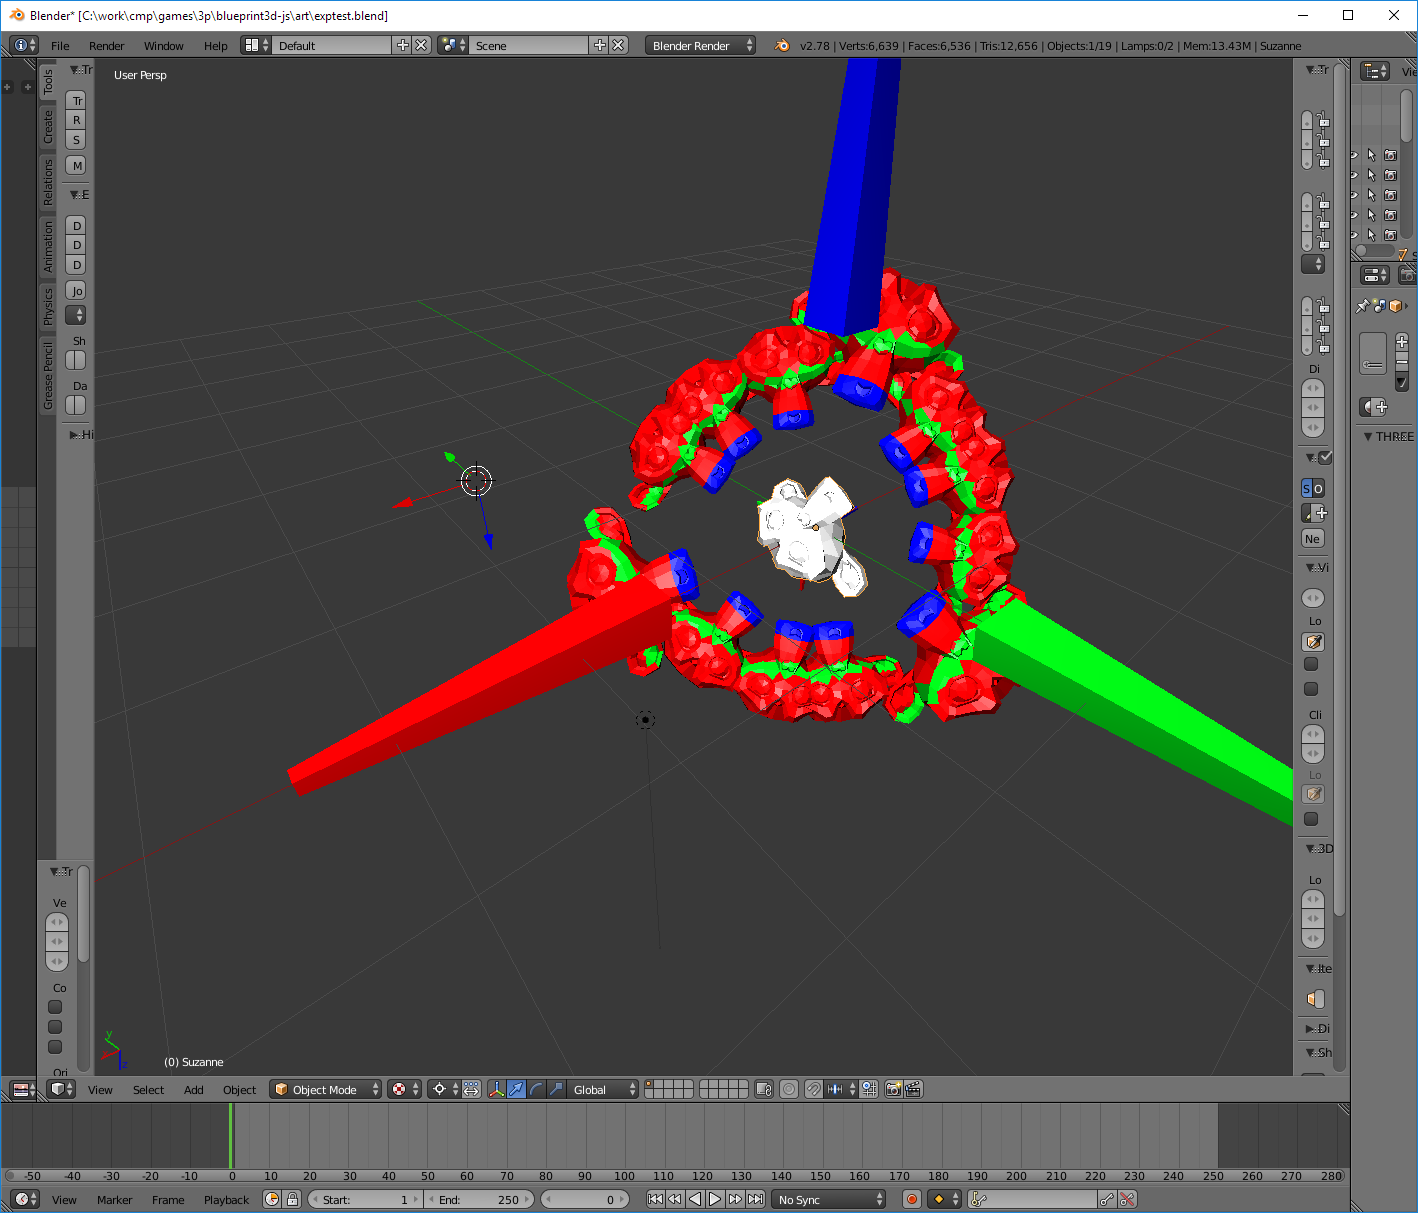 Blender exporter - Exported object transforms and geometry